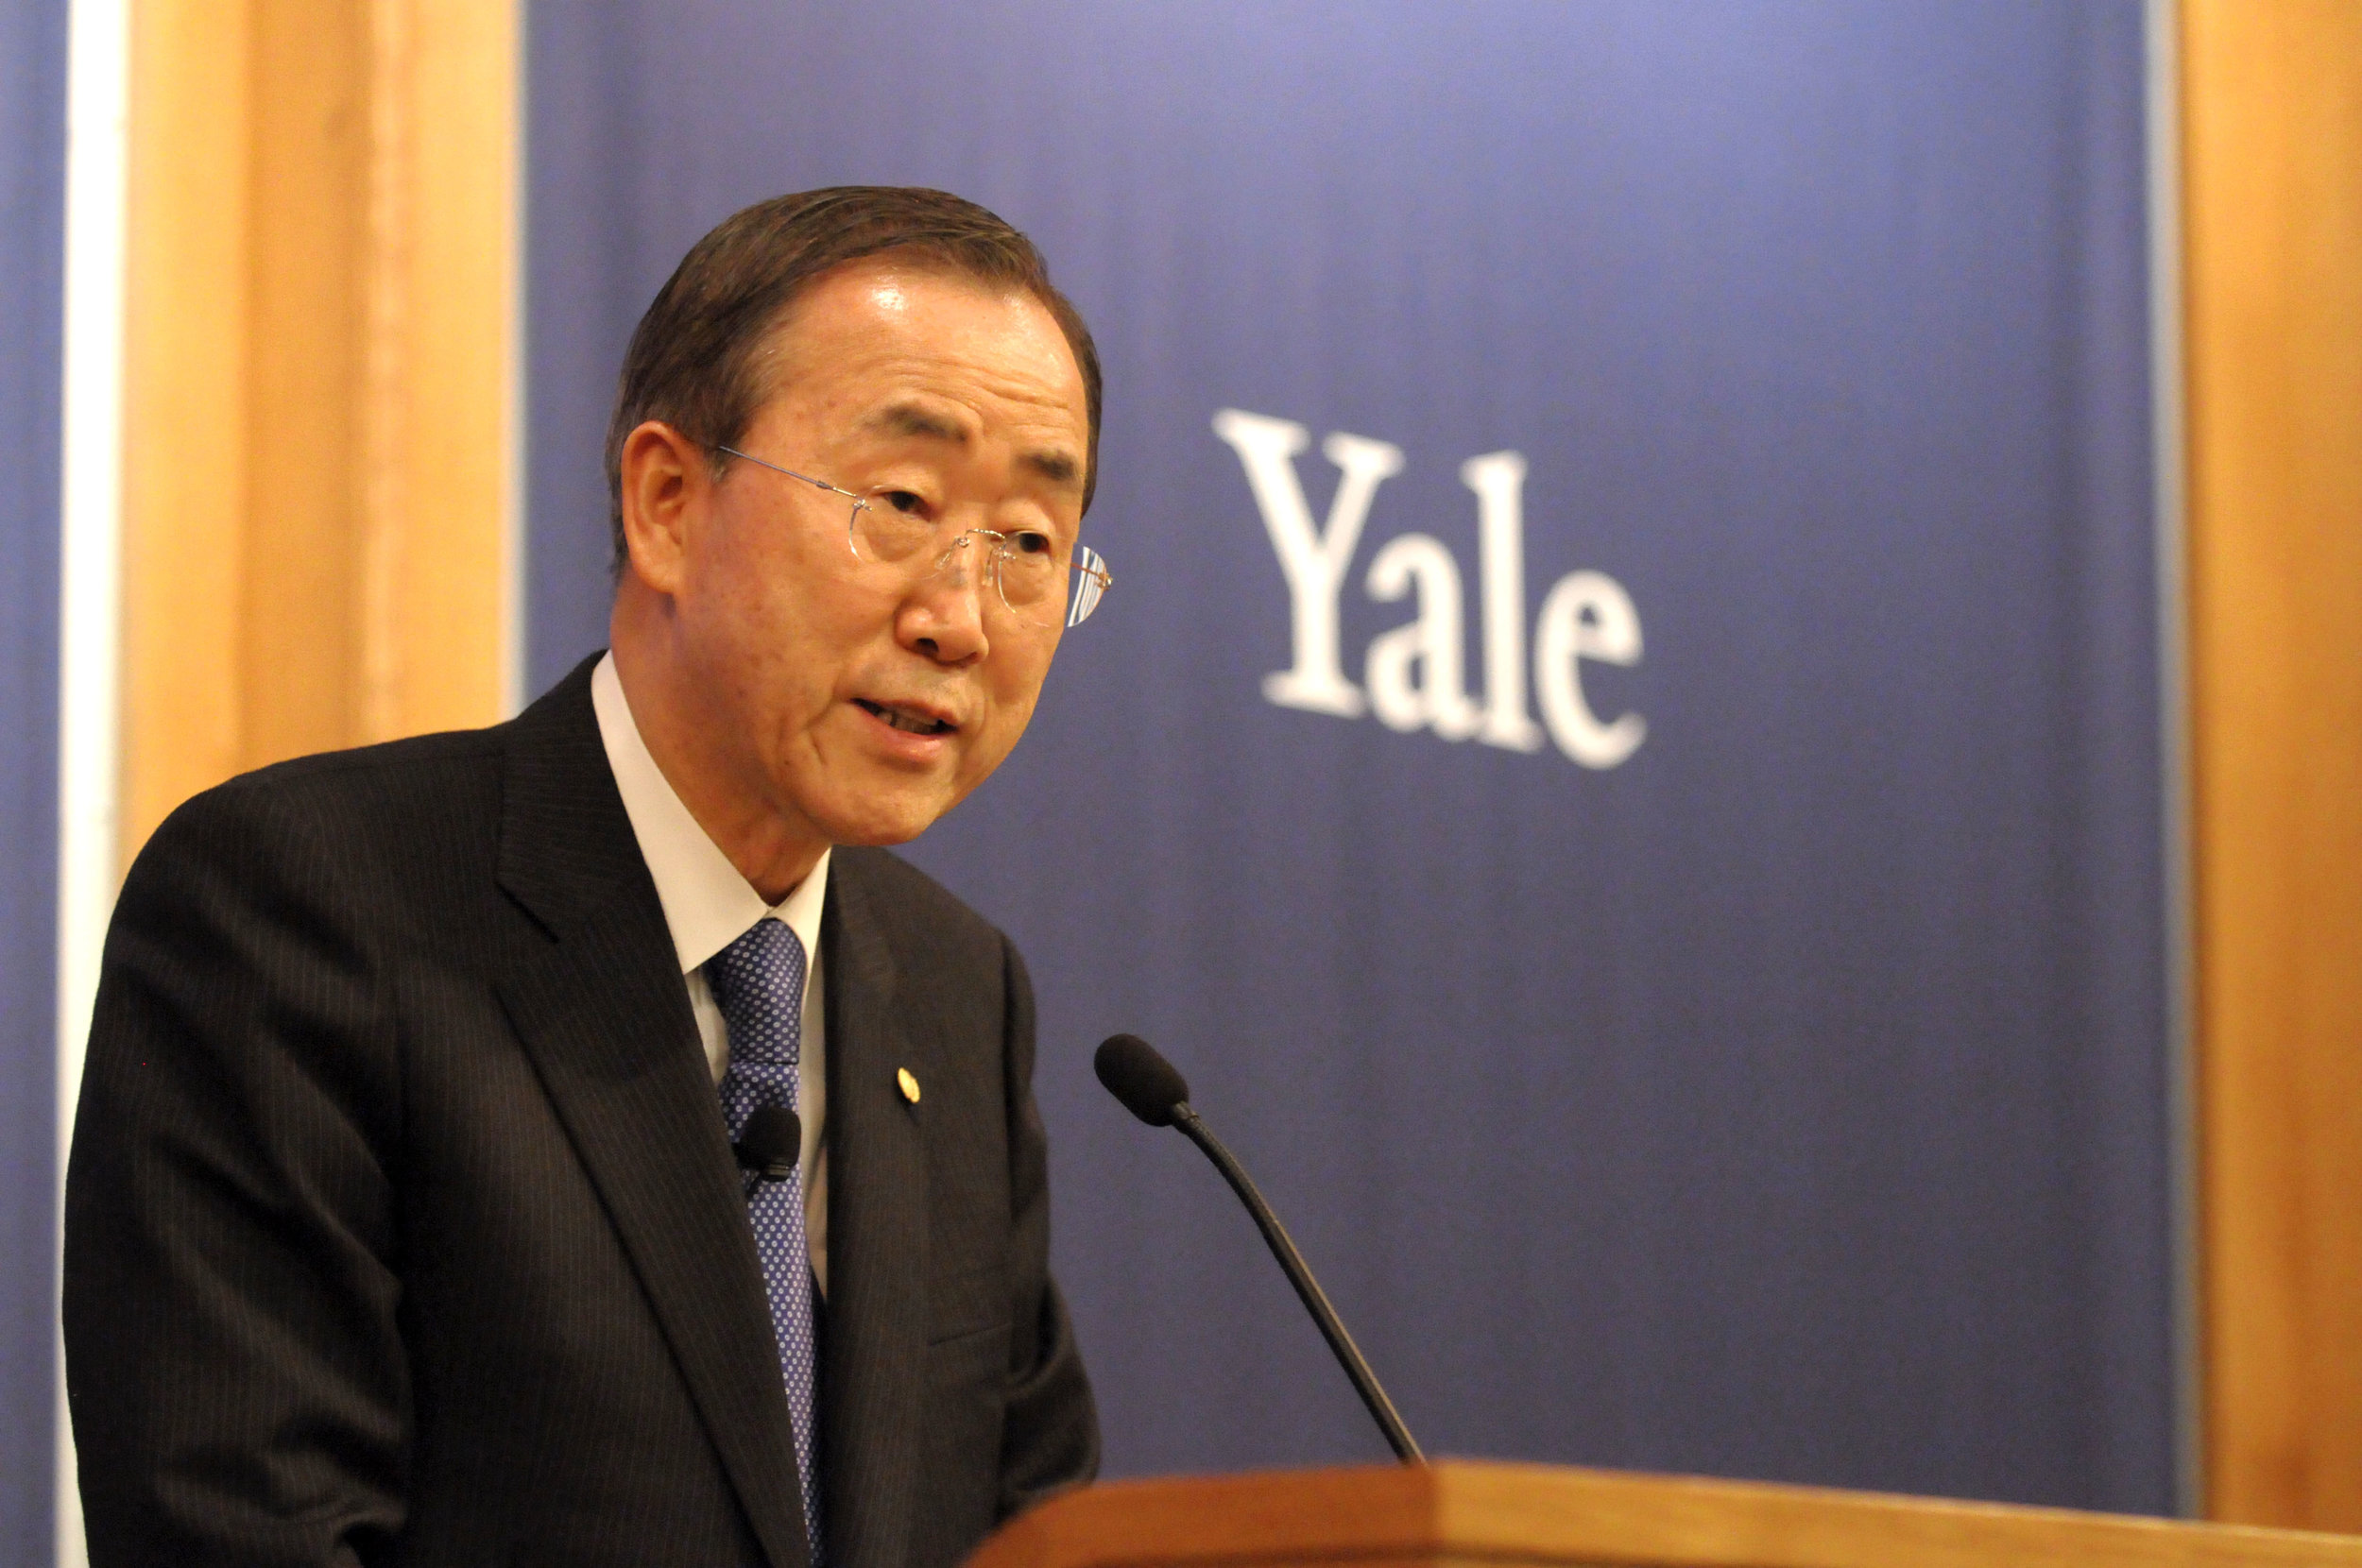 Ban Ki Moon Speaks at Yale Conference Center